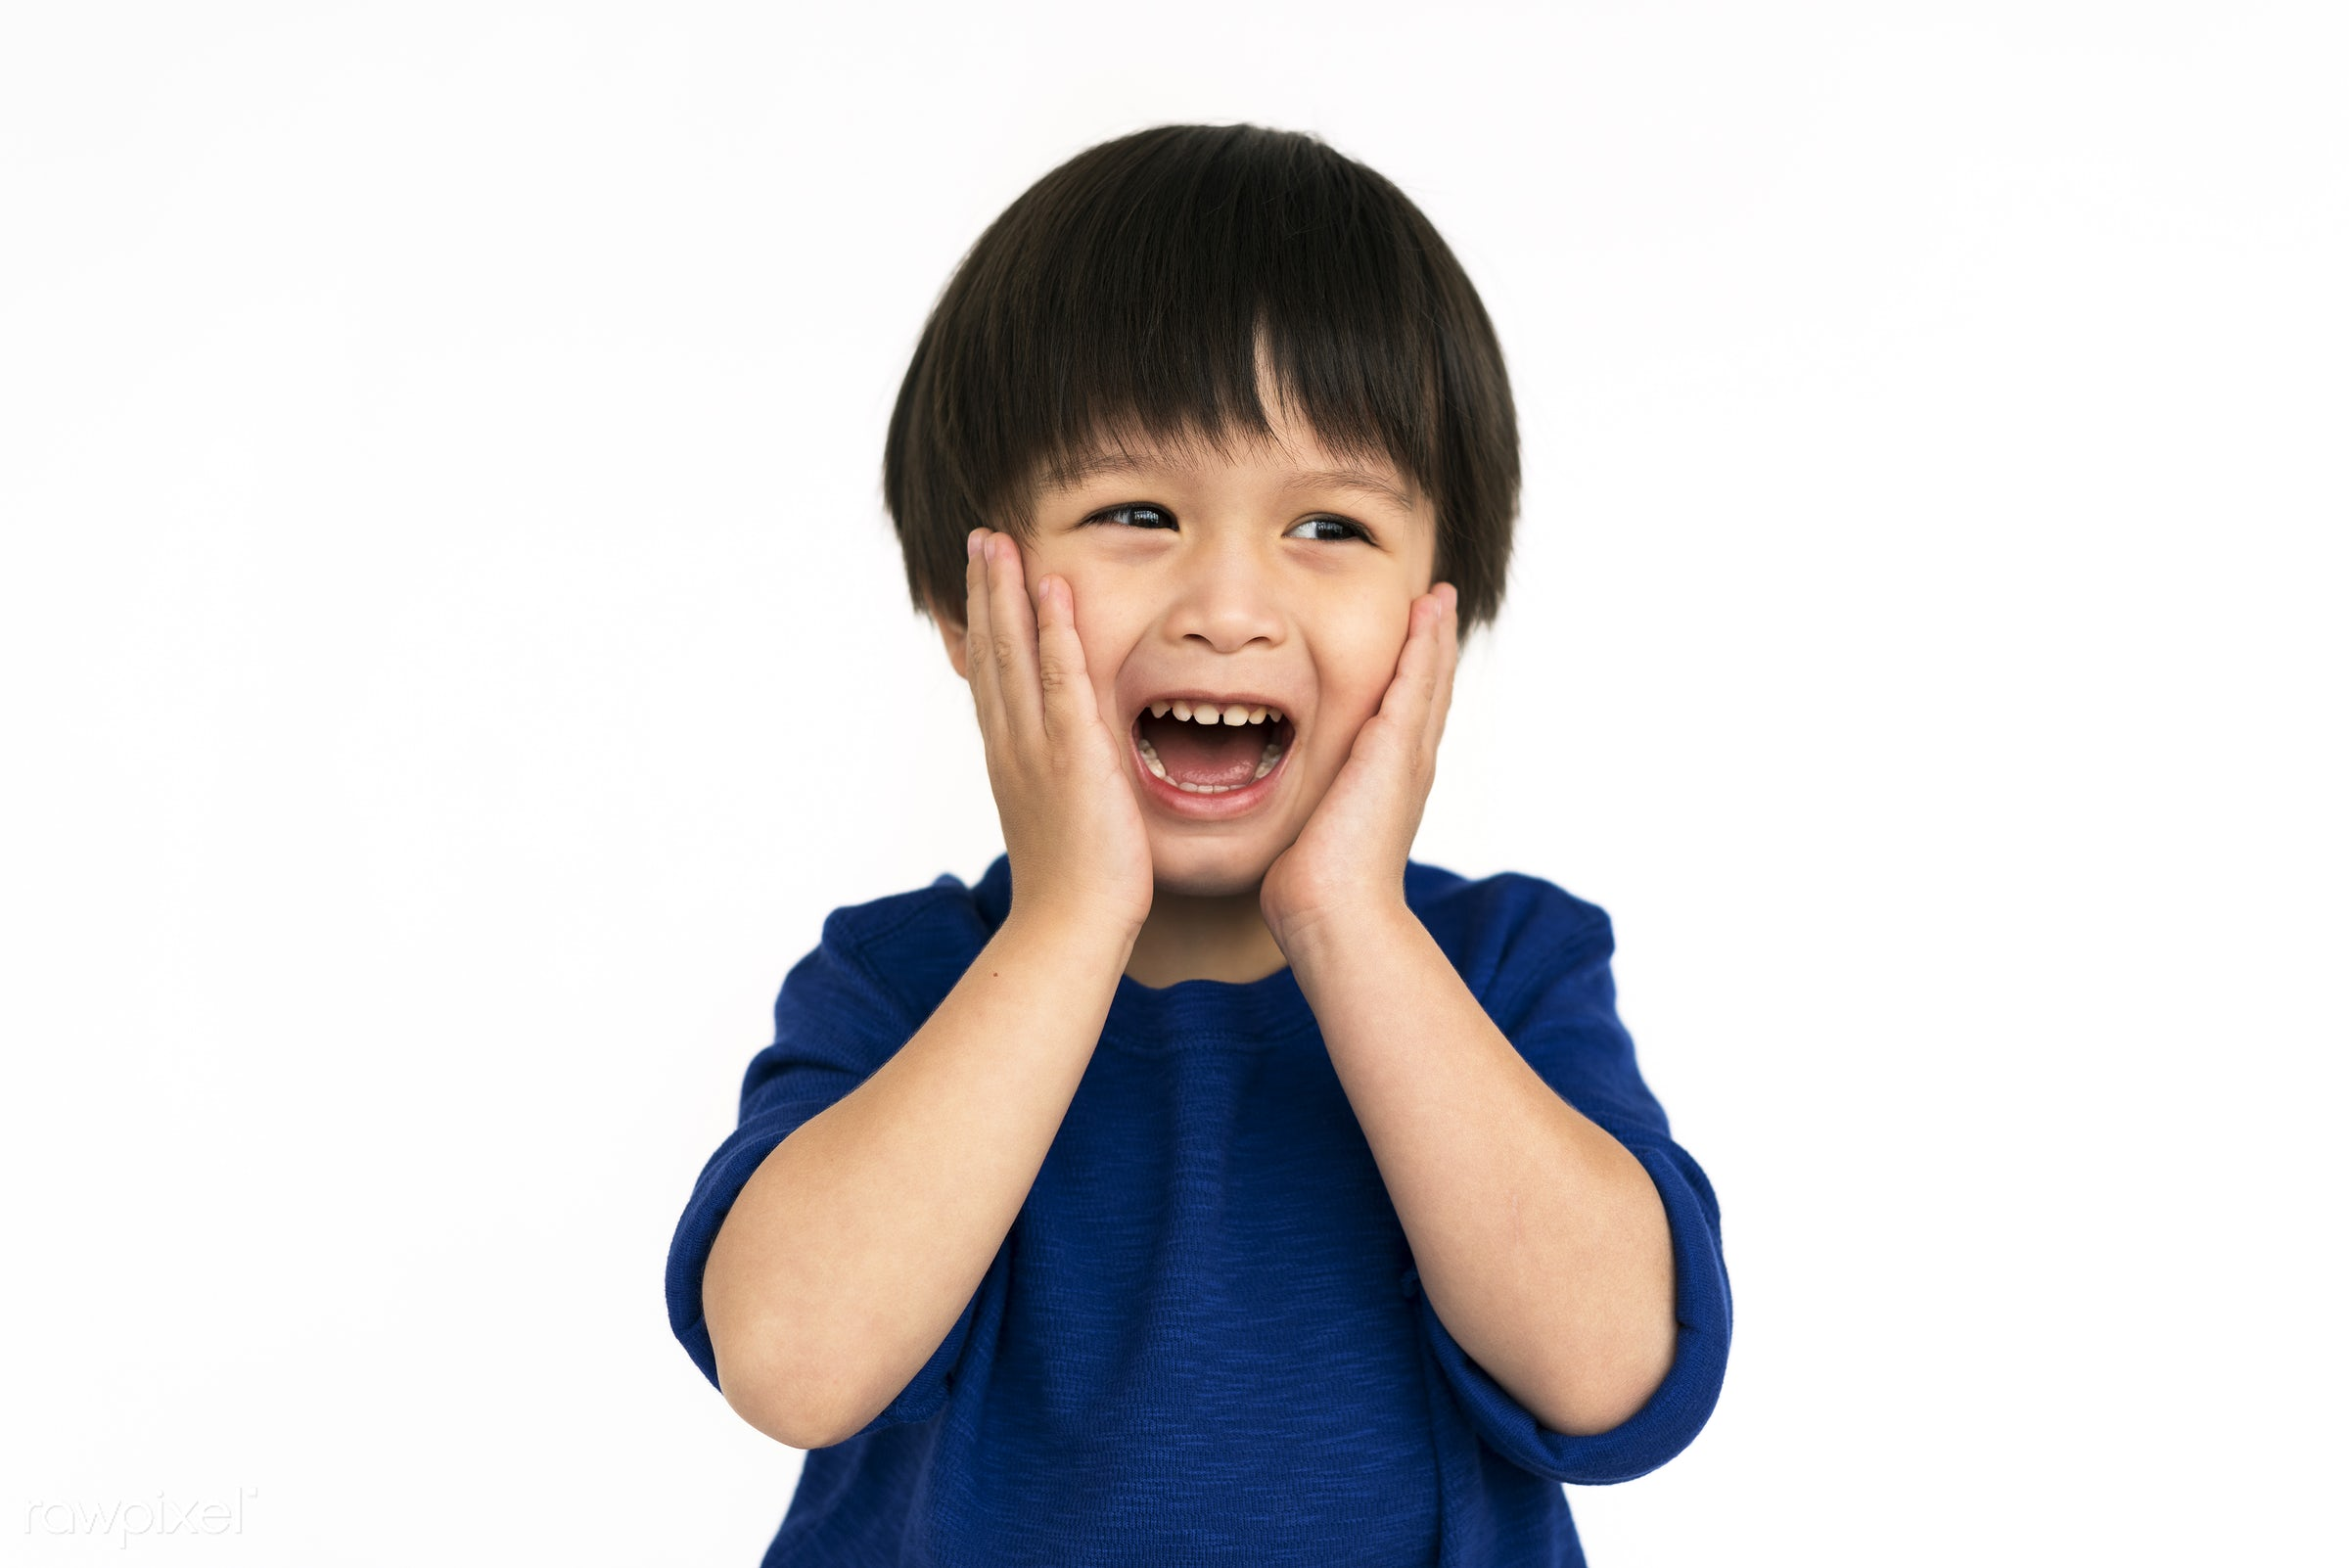 Portrait of a young Asian boy - expression, studio, little, asian, kid, open, childhood, cheerful, screaming, isolated,...